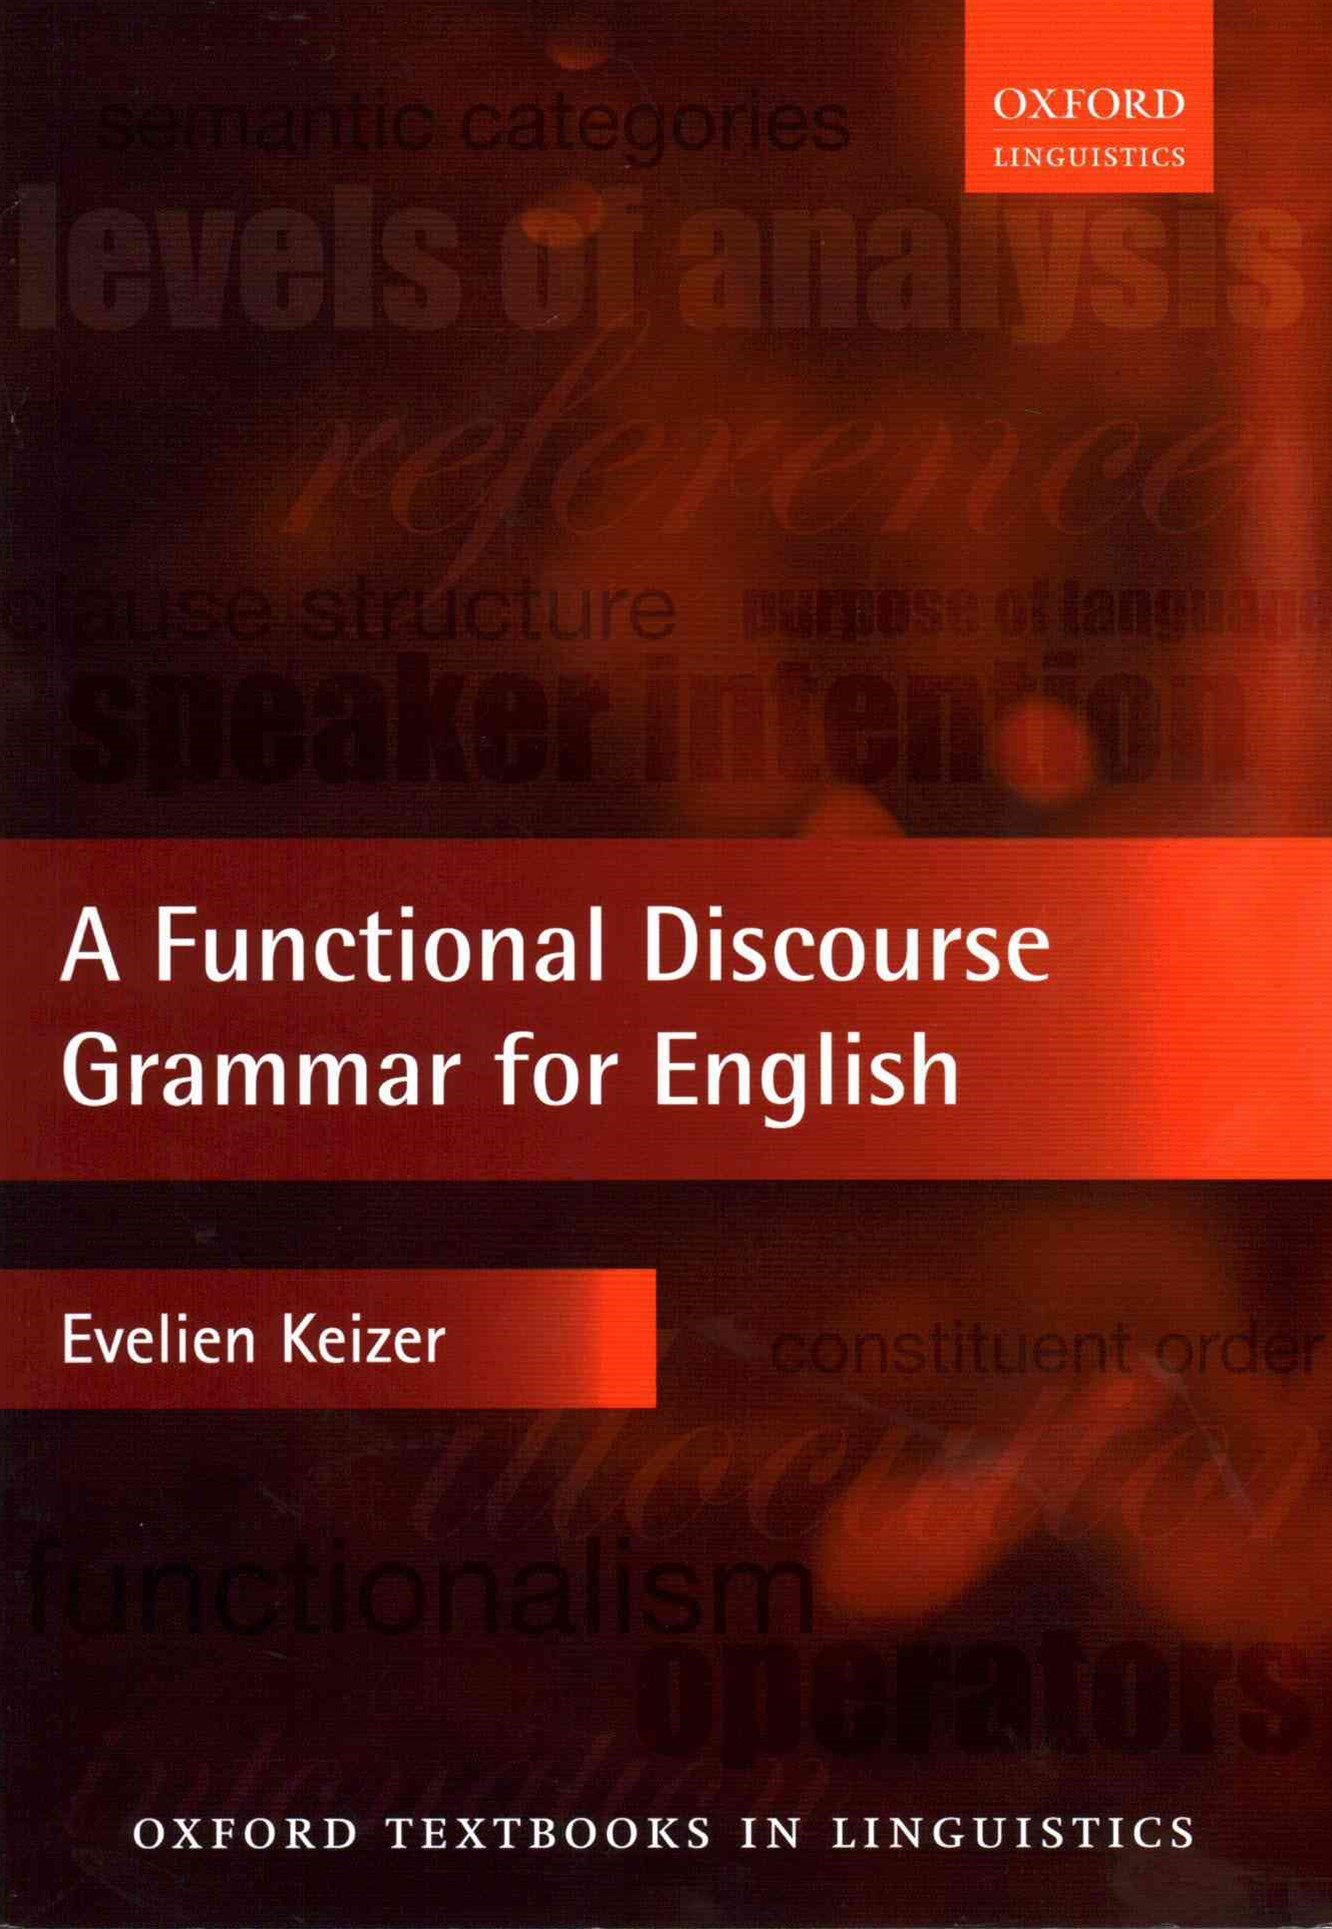 A Functional Discourse Grammar for English